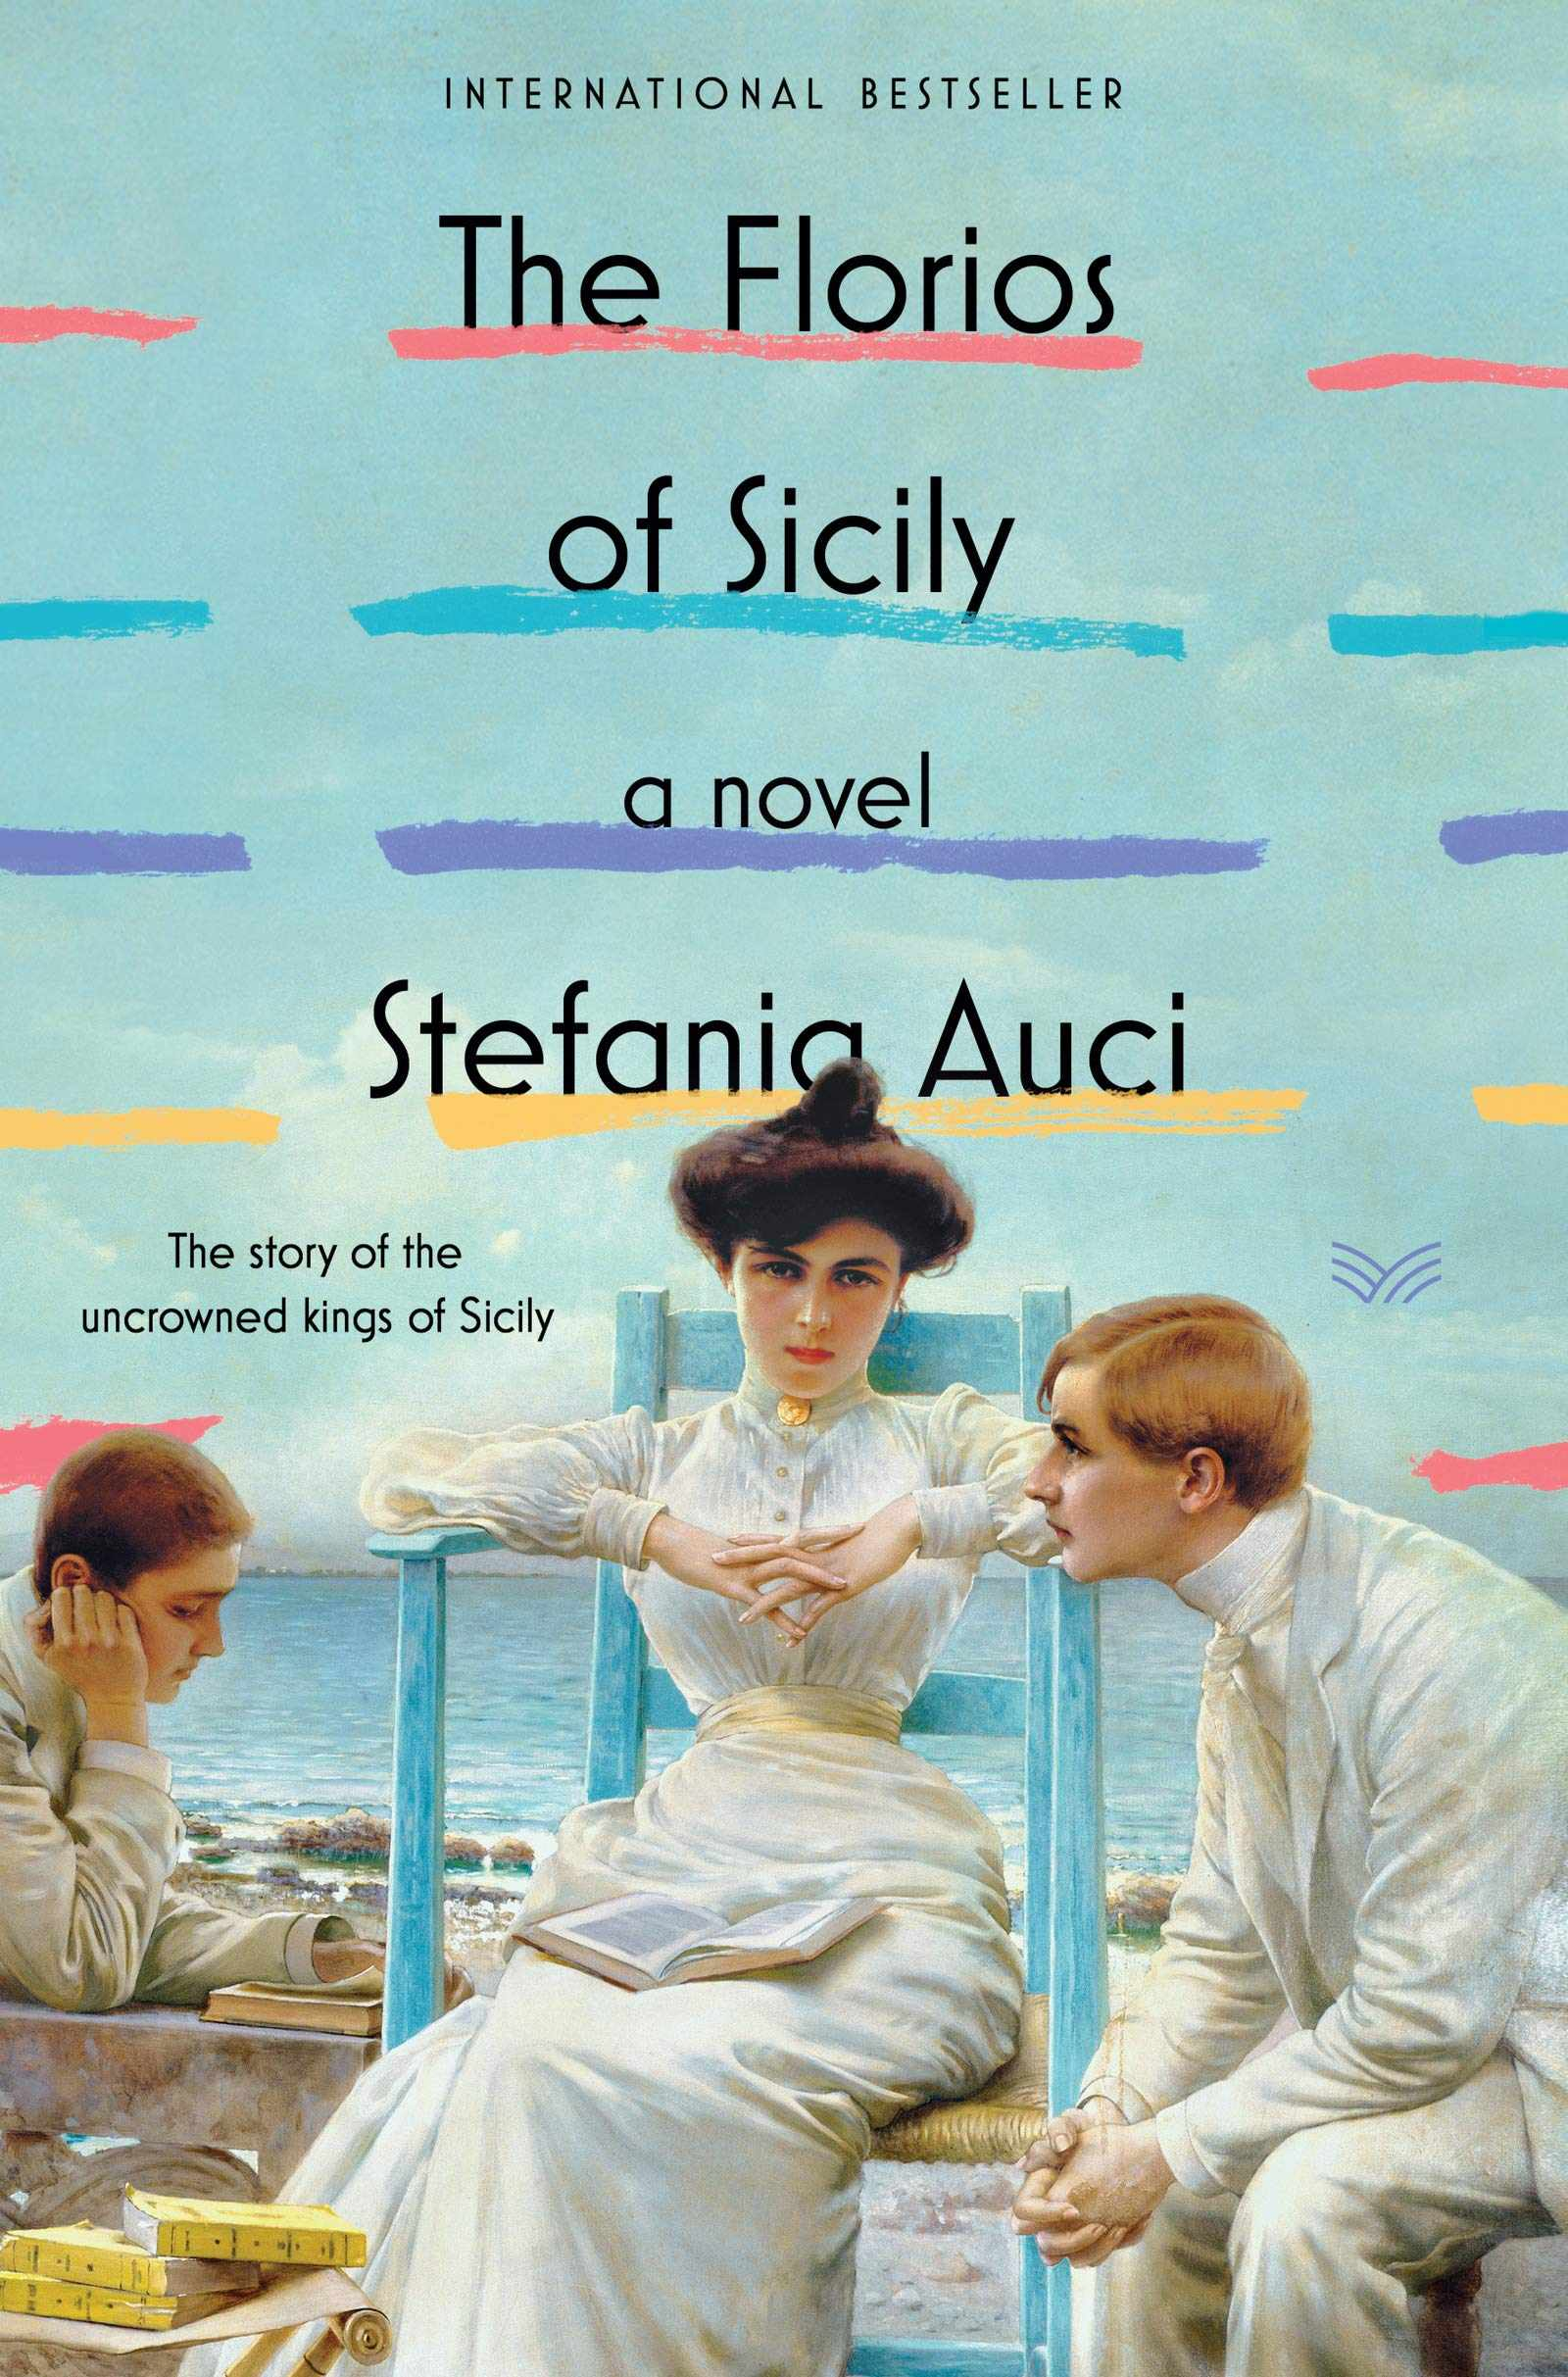 Amazon.com: The Florios of Sicily: A Novel (9780062931672): Auci, Stefania:  Books